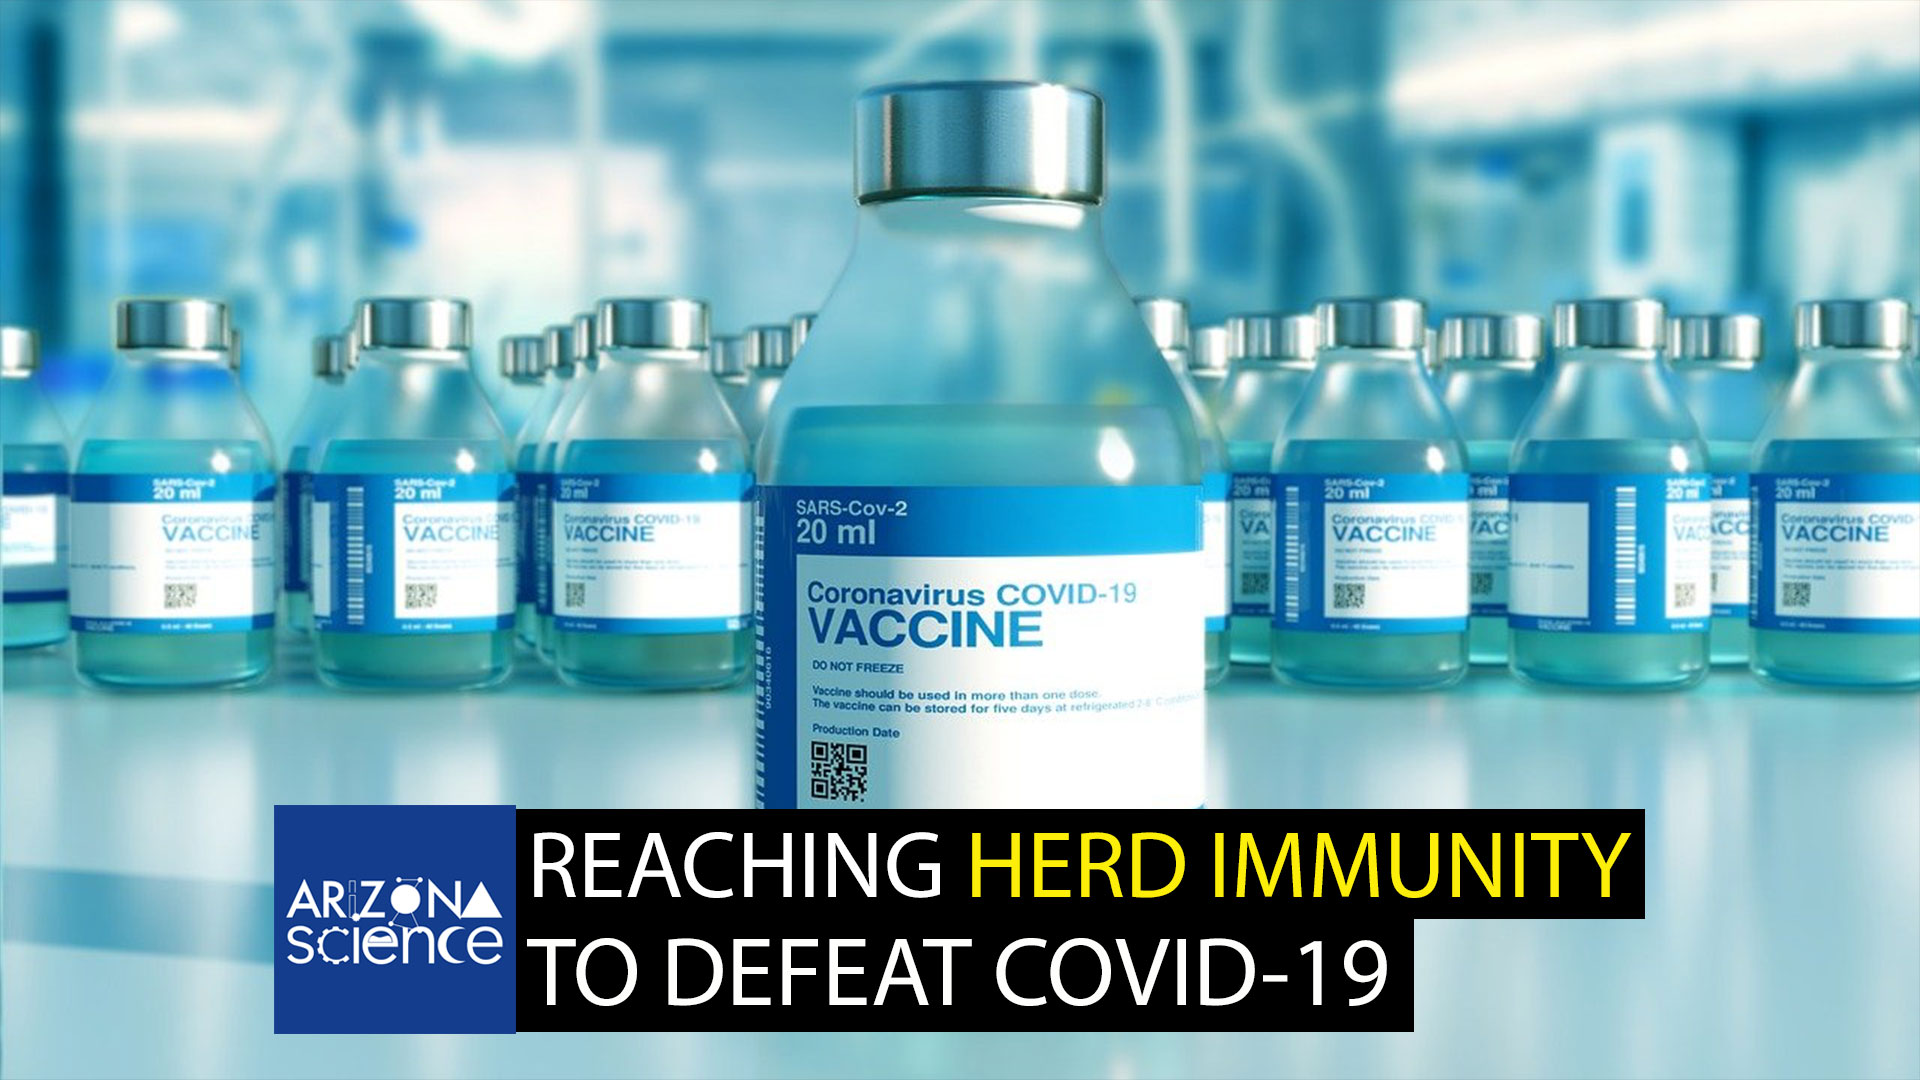 Episode 270: Reaching herd immunity to defeat COVID-19